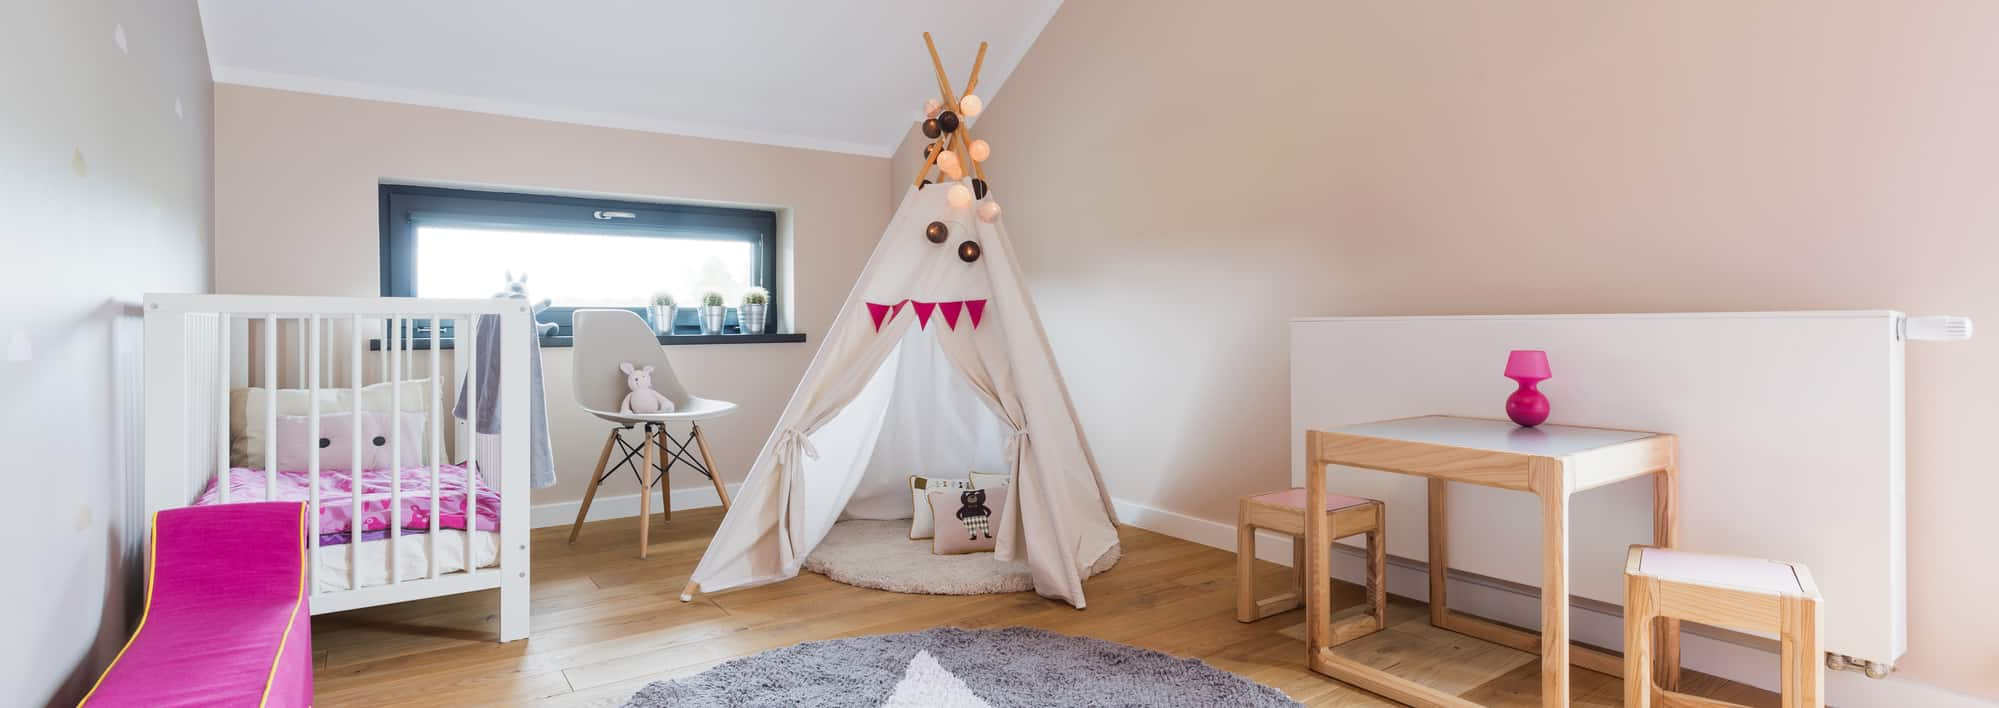 What Is The Best Color For Your Child's Bedroom3